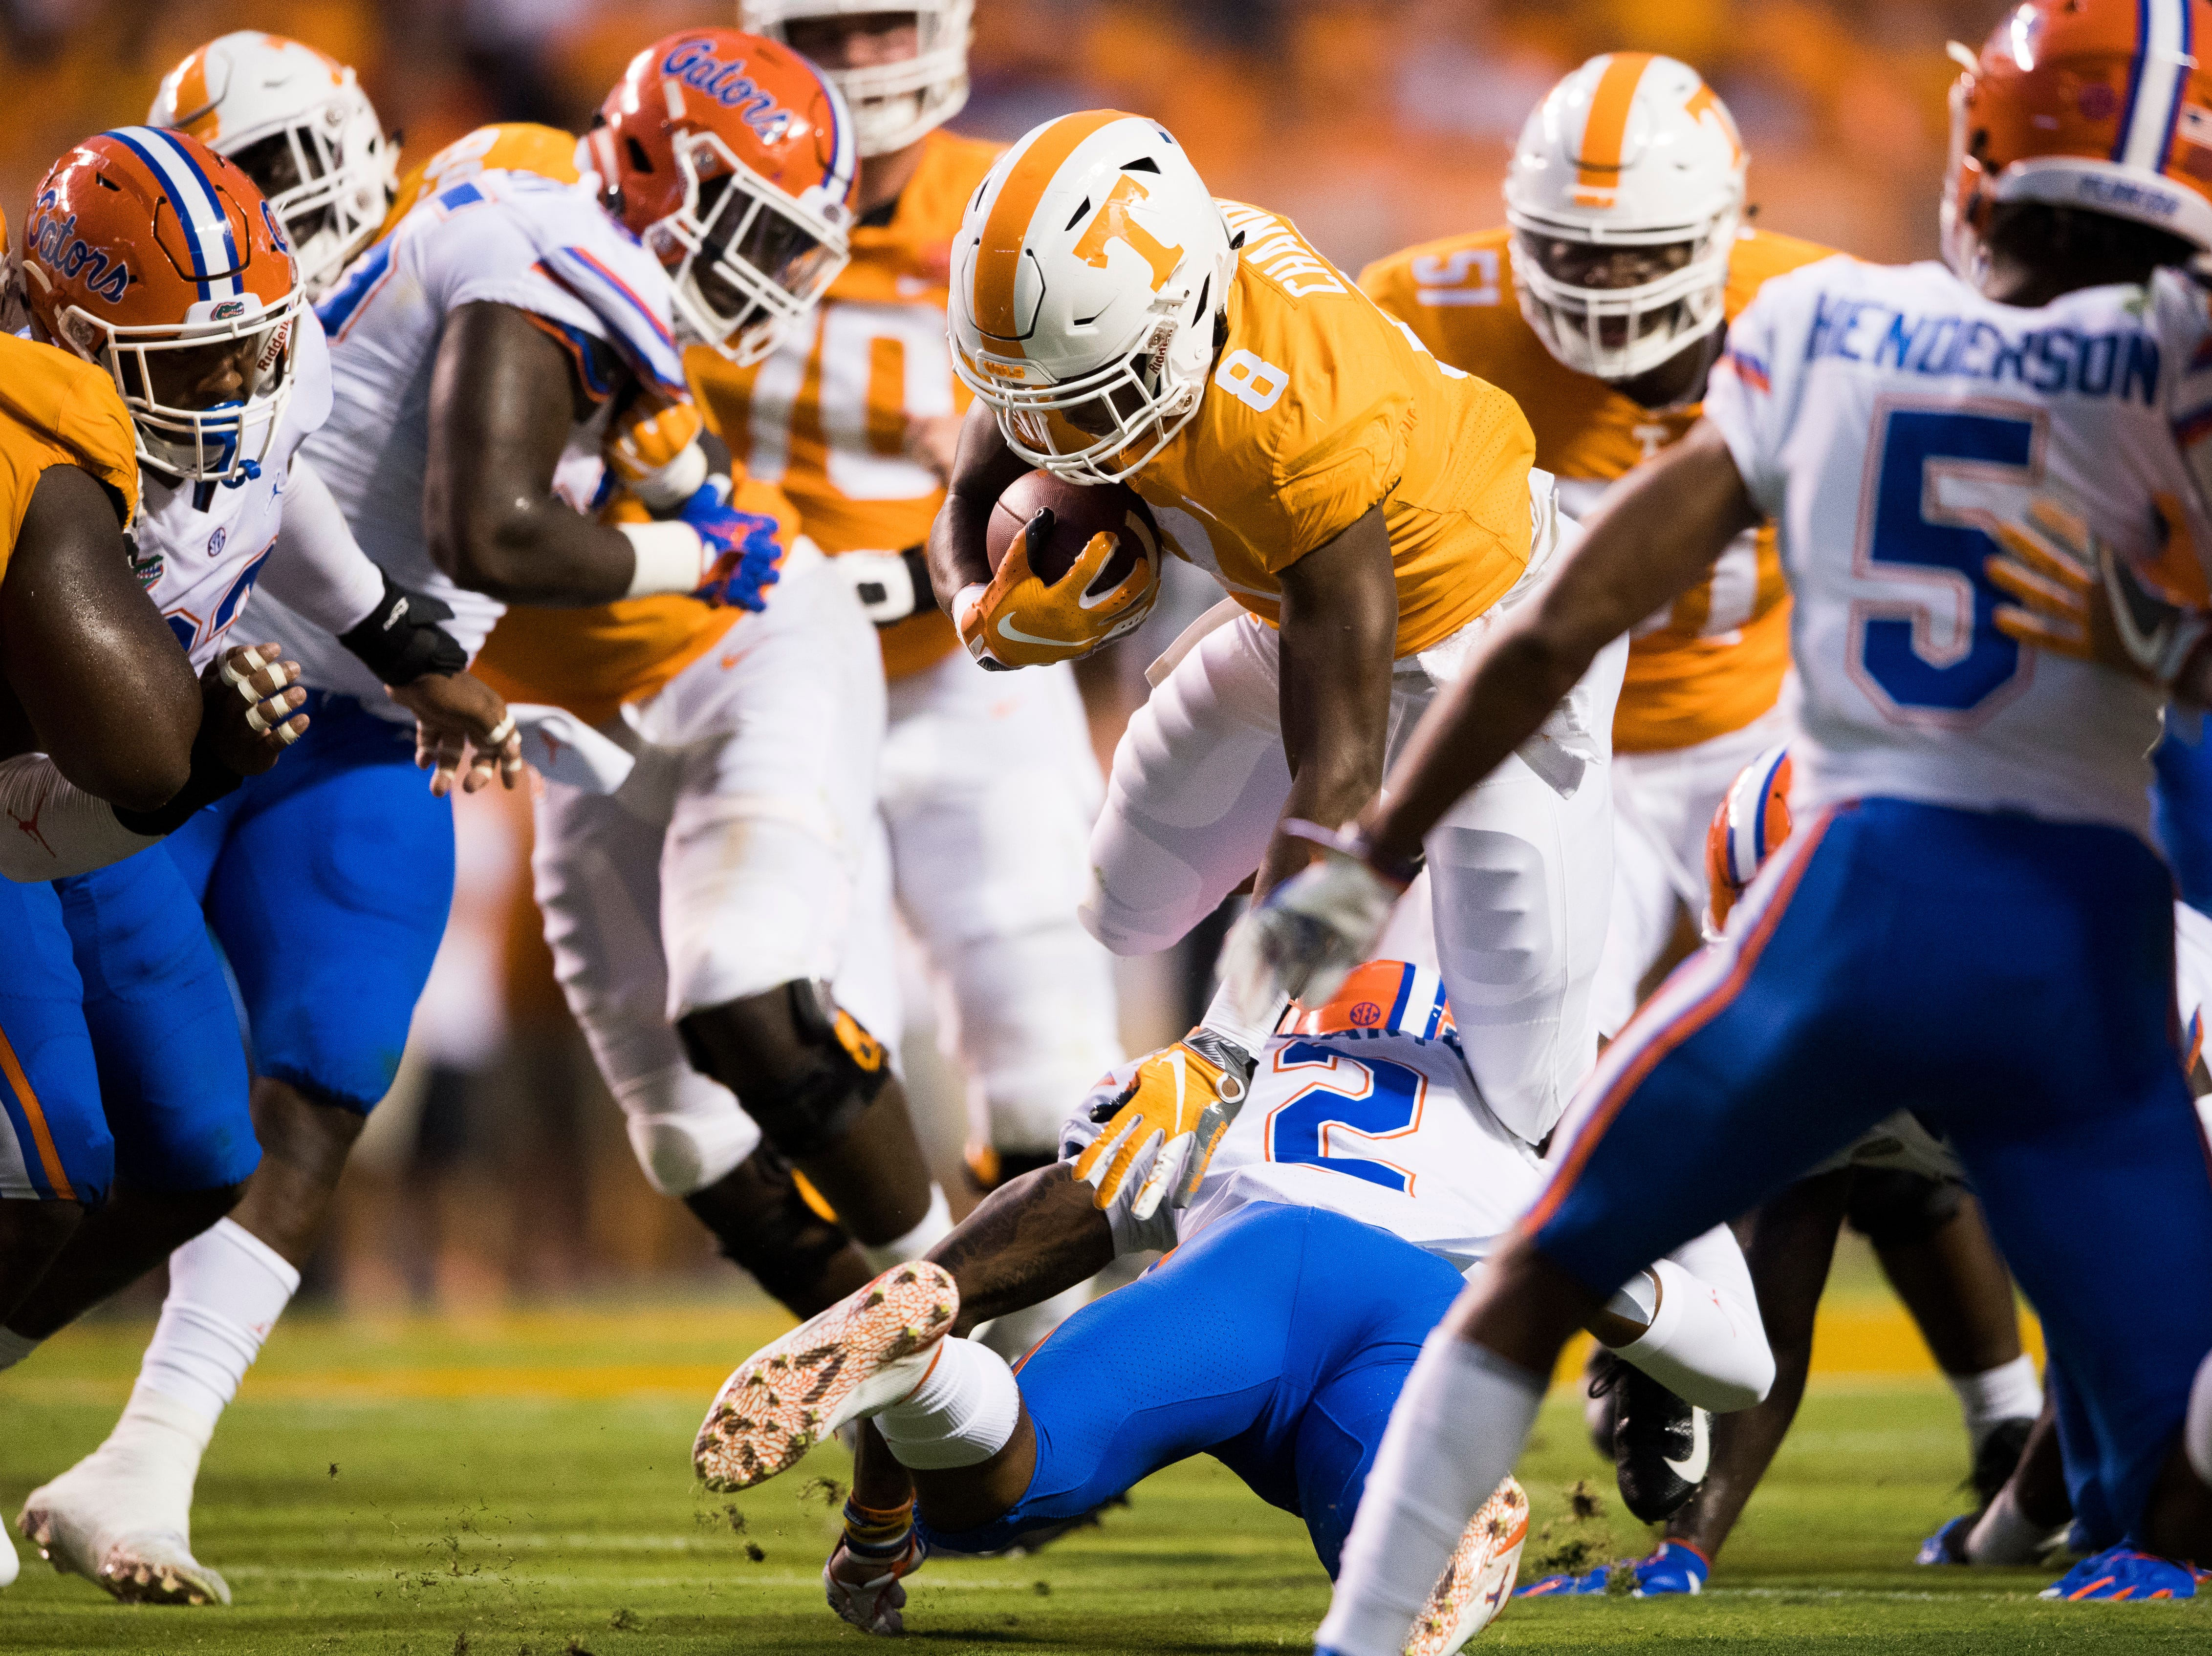 Tennessee running back Ty Chandler (8) leaps over Florida defensive back Brad Stewart, Jr. (2) during a game between Tennessee and Florida at Neyland Stadium in Knoxville, Tennessee on Saturday, September 22, 2018.